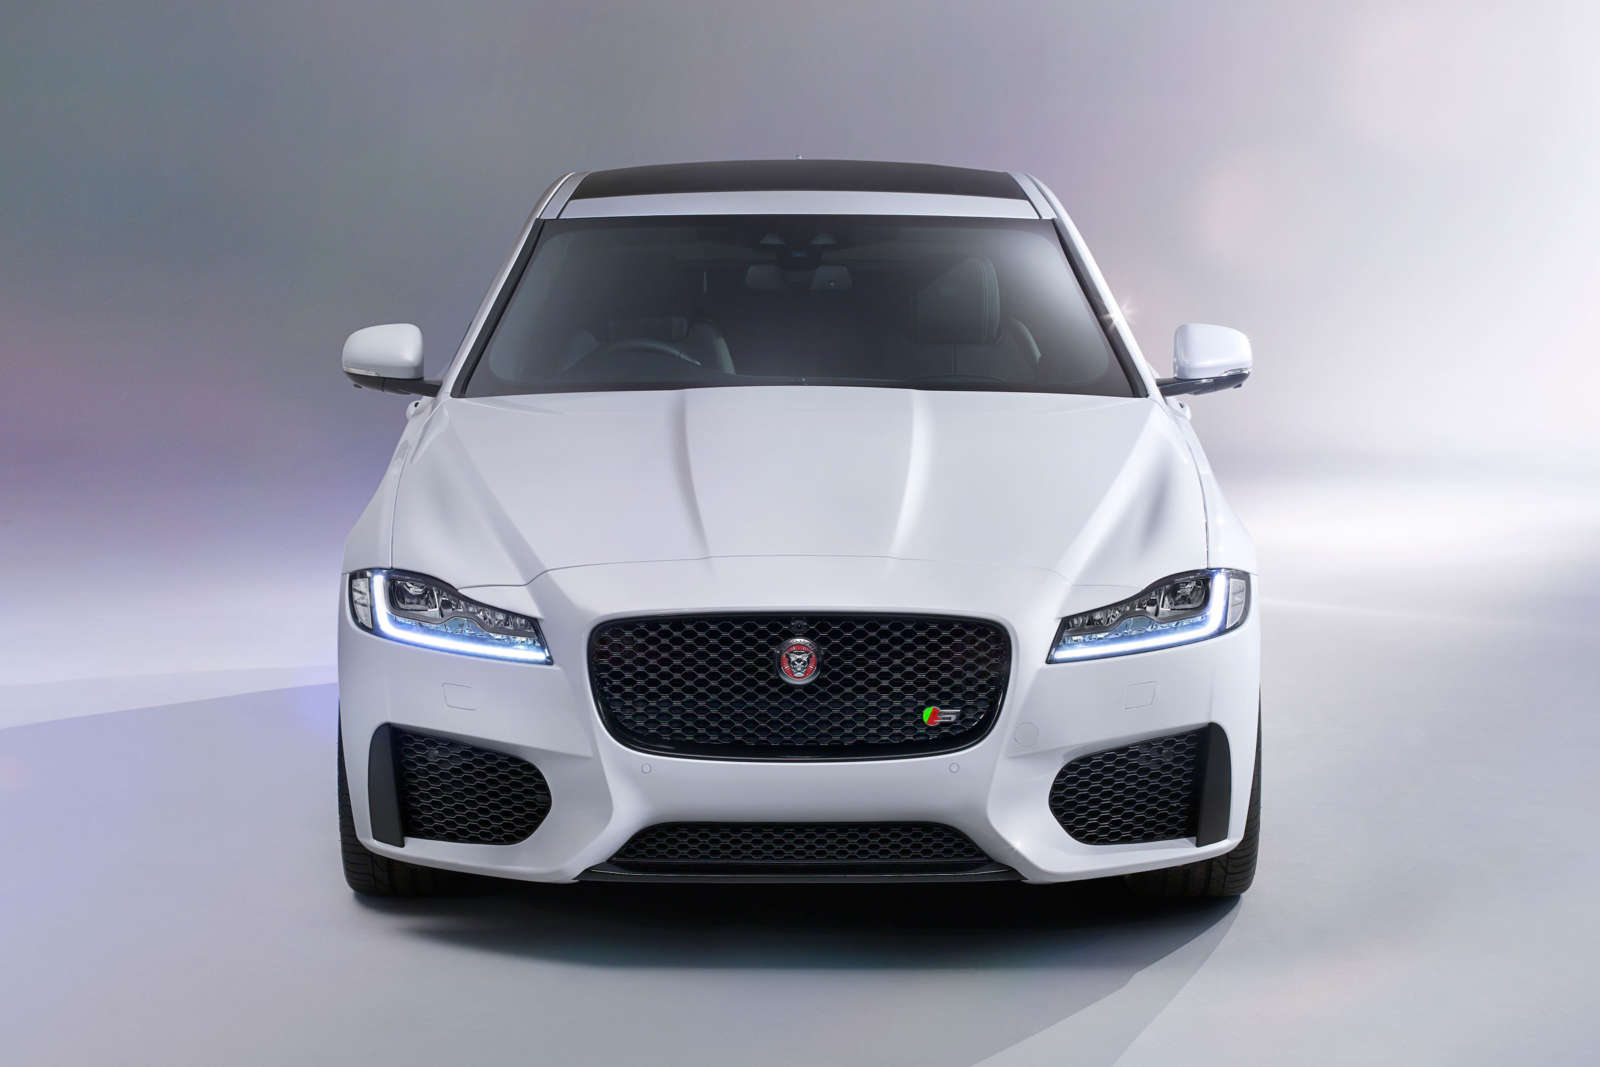 All new Jaguar XF Specifications and Details